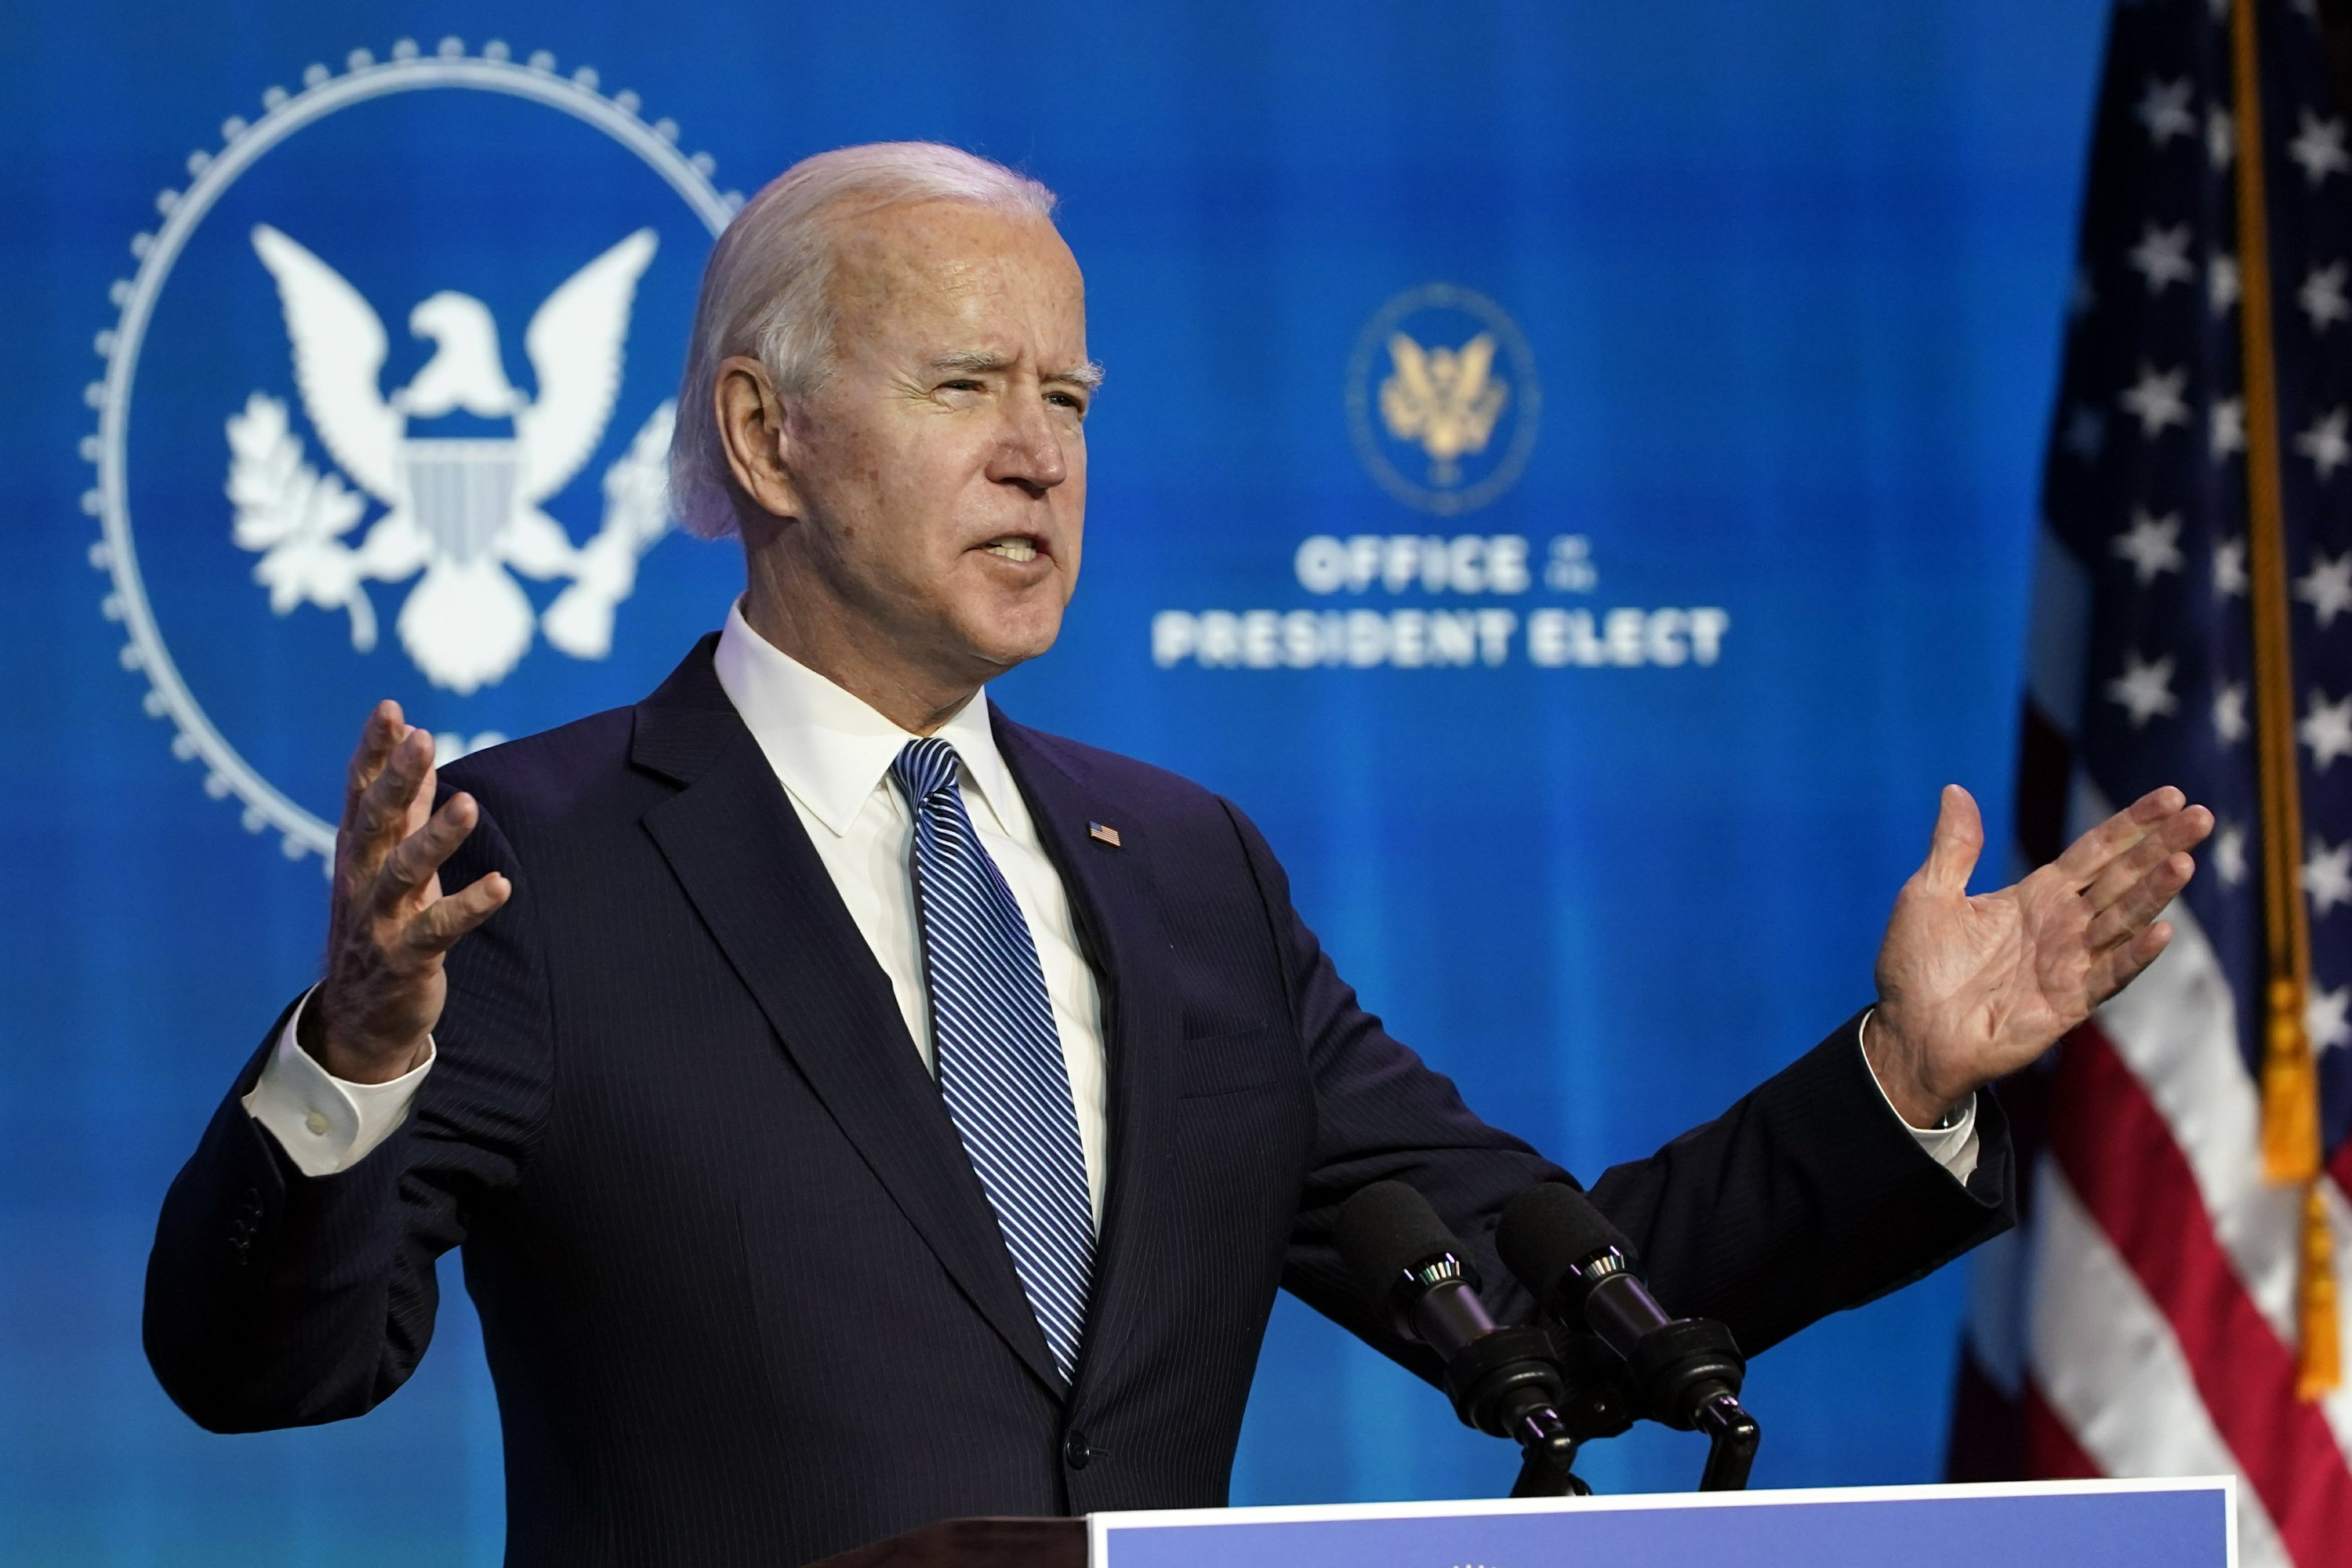 Biden forgoing Amtrak trip to Washington over security fears – Associated Press